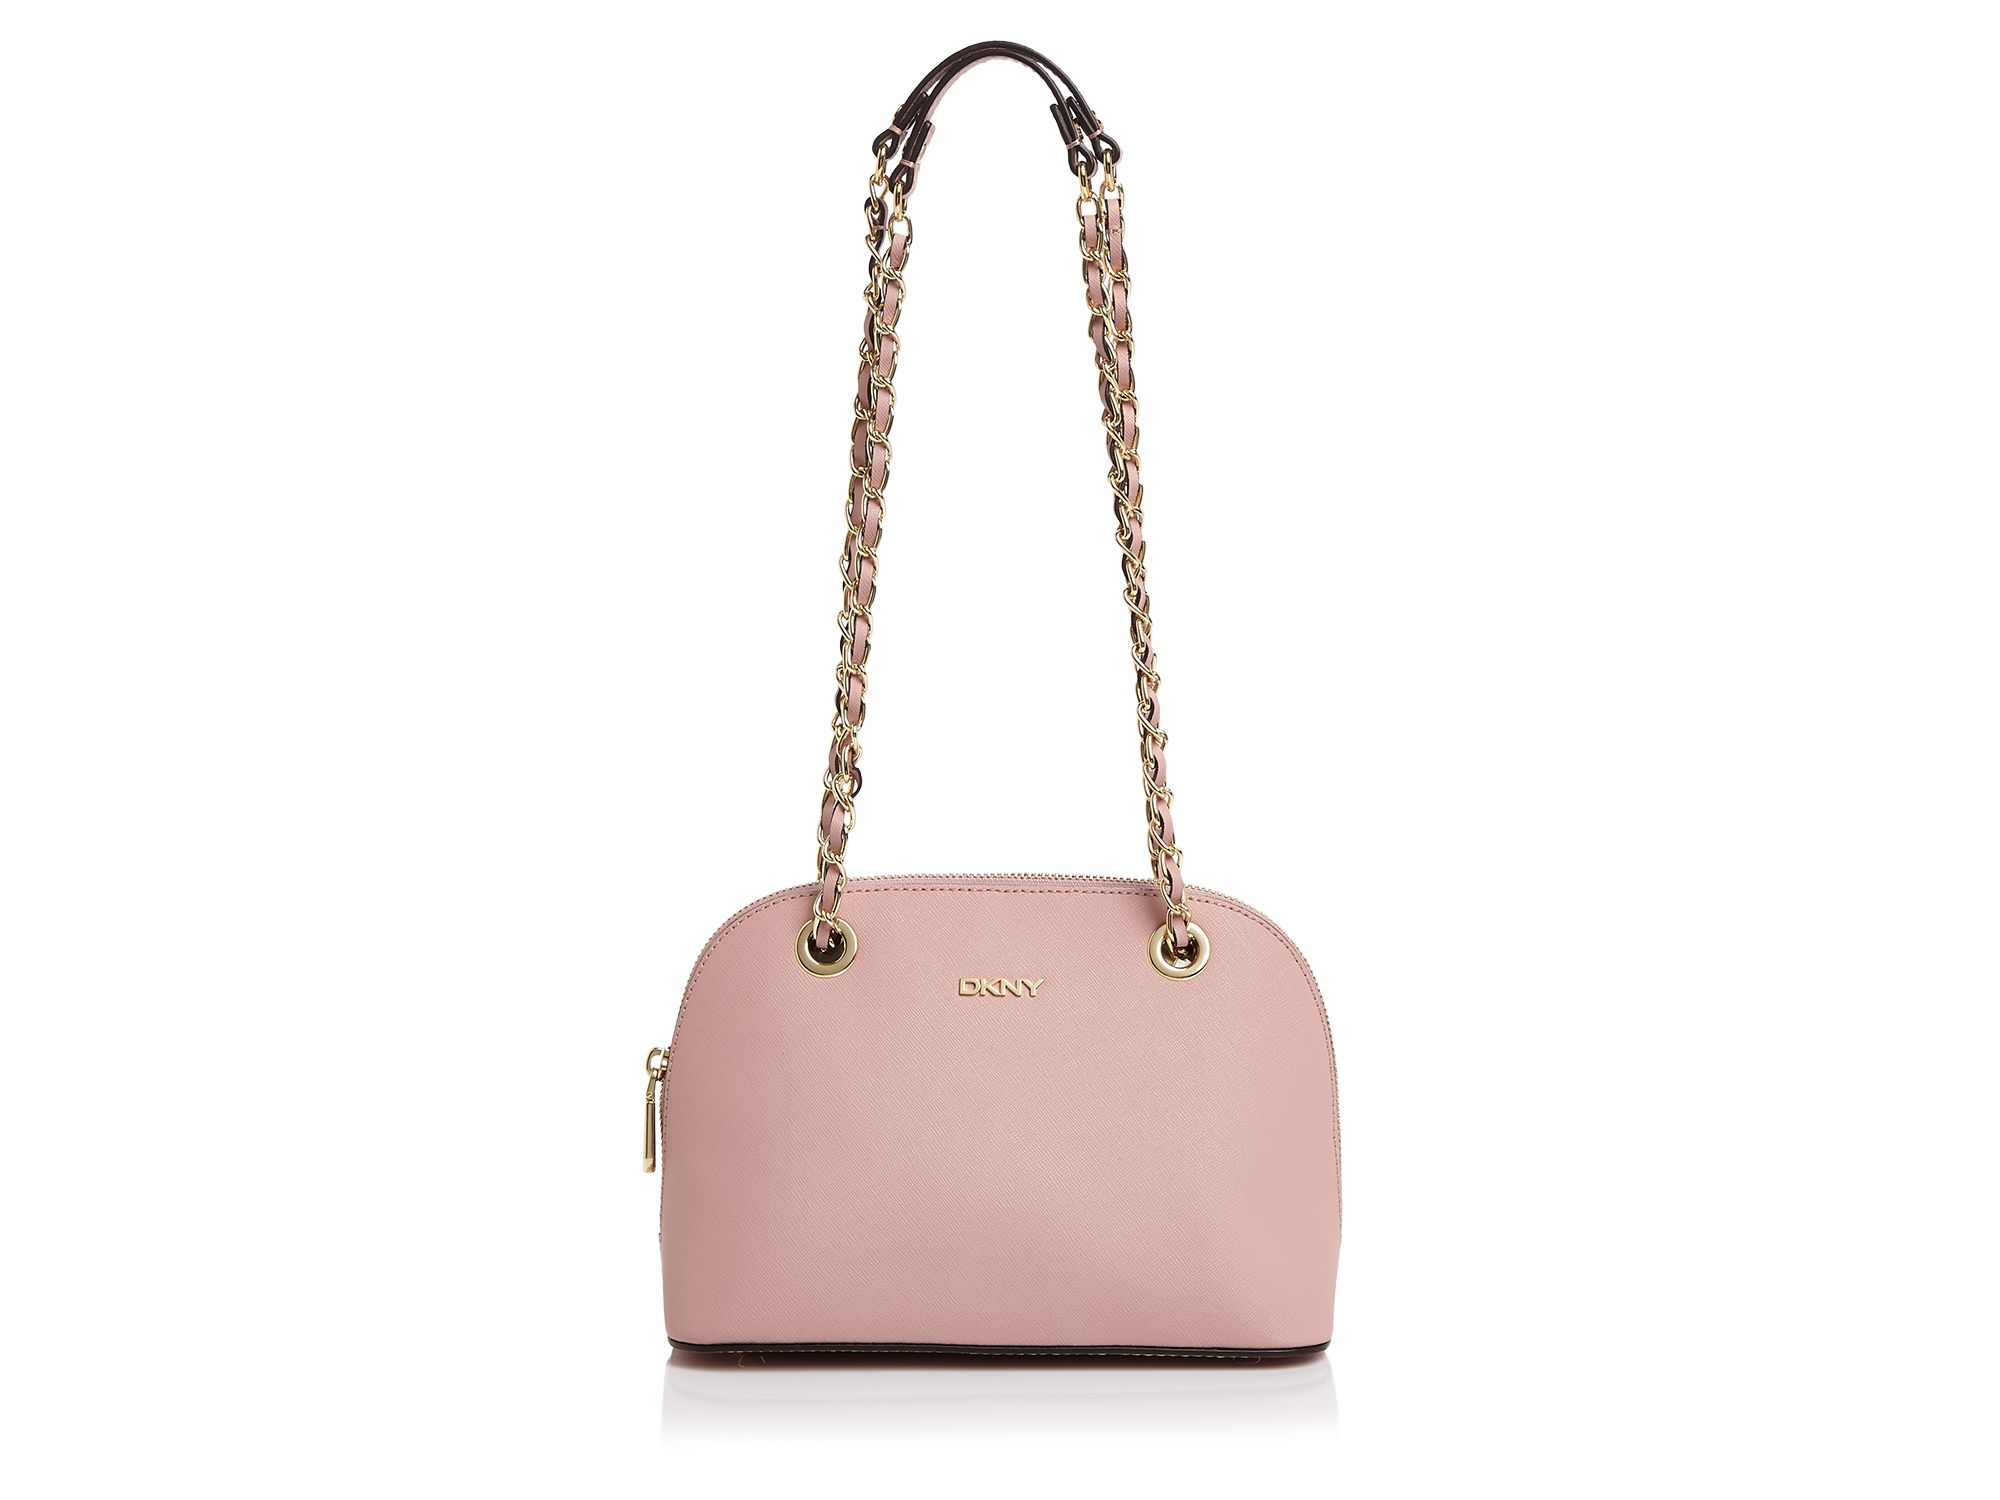 Dkny Bryant Park Saffiano Small Round Crossbody in Pink | Lyst